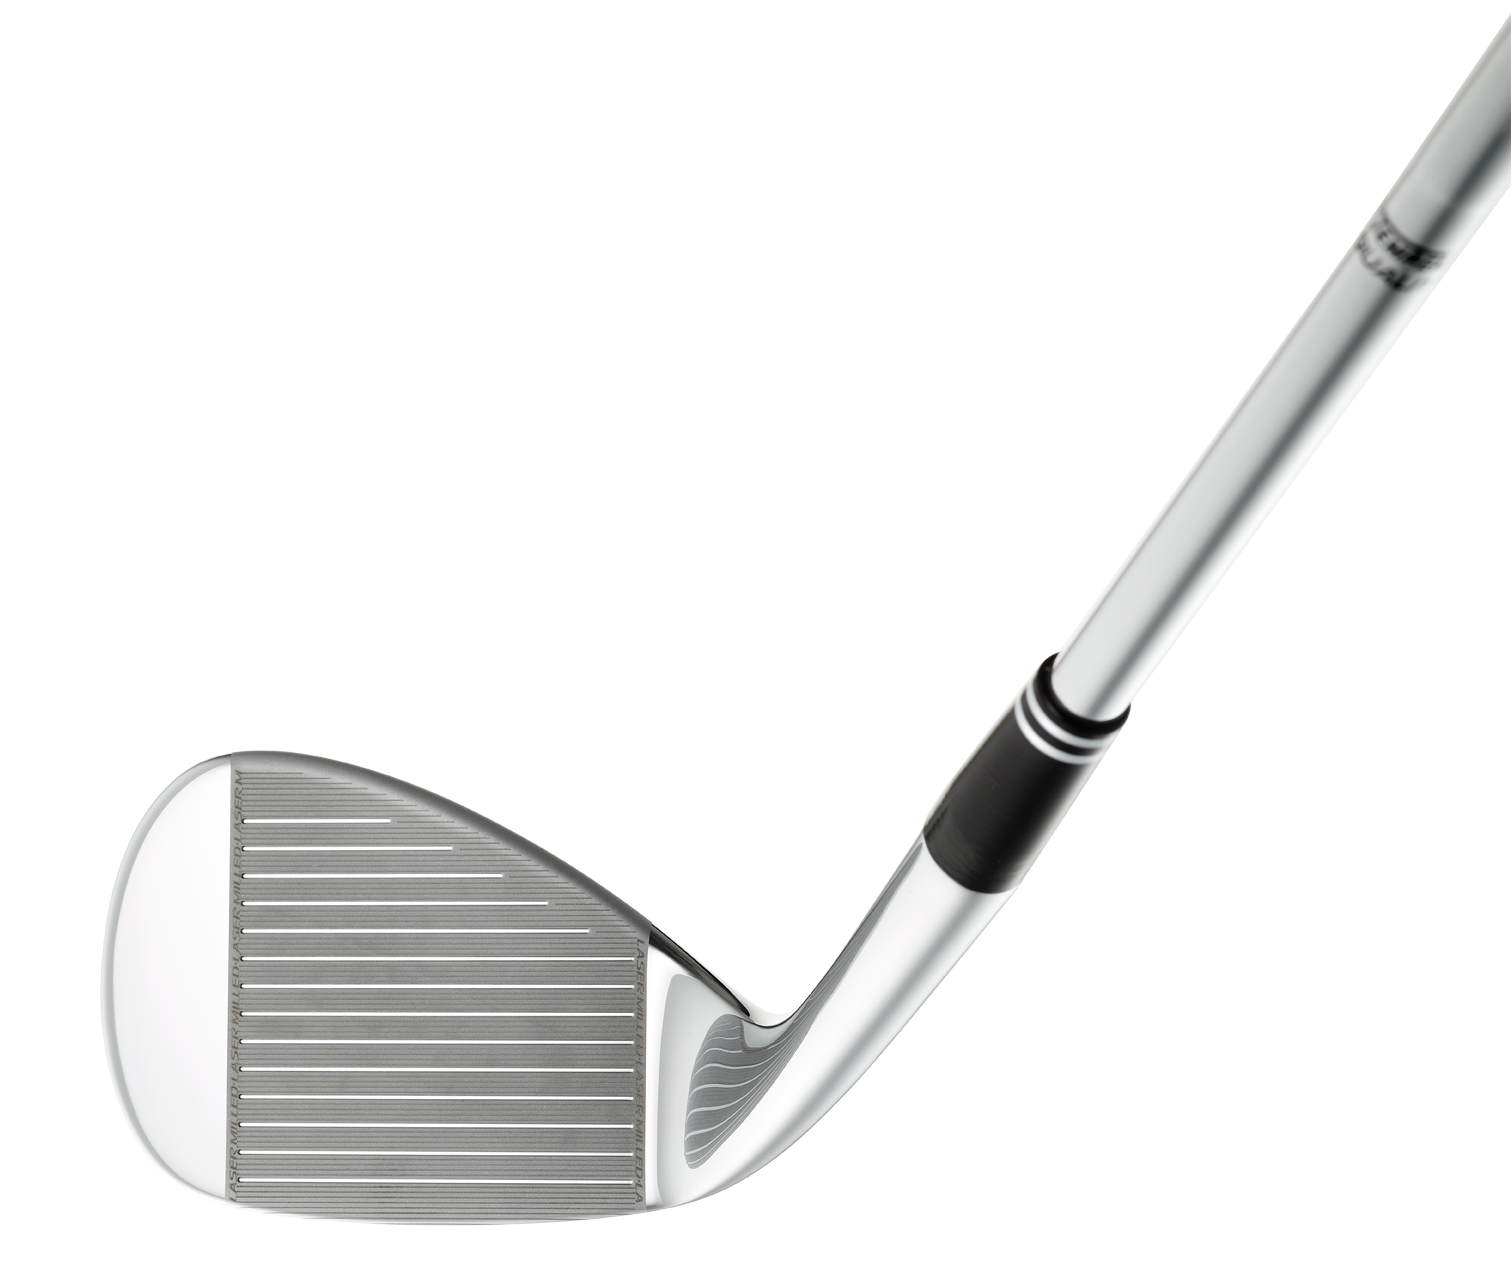 golf club head png